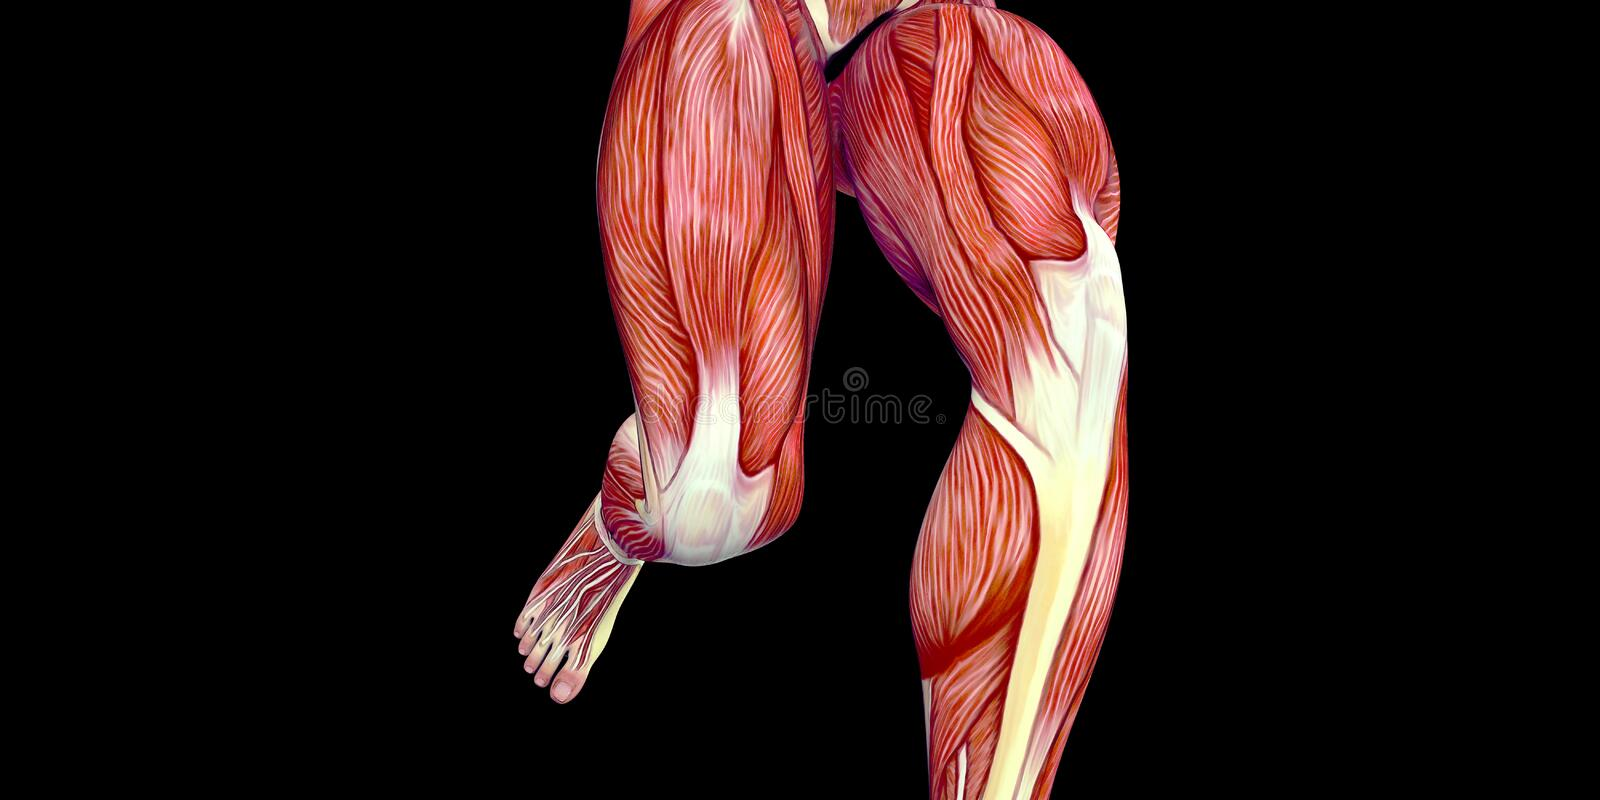 Human Male Body Anatomy Illustration With Visible Thigh Muscles And ...